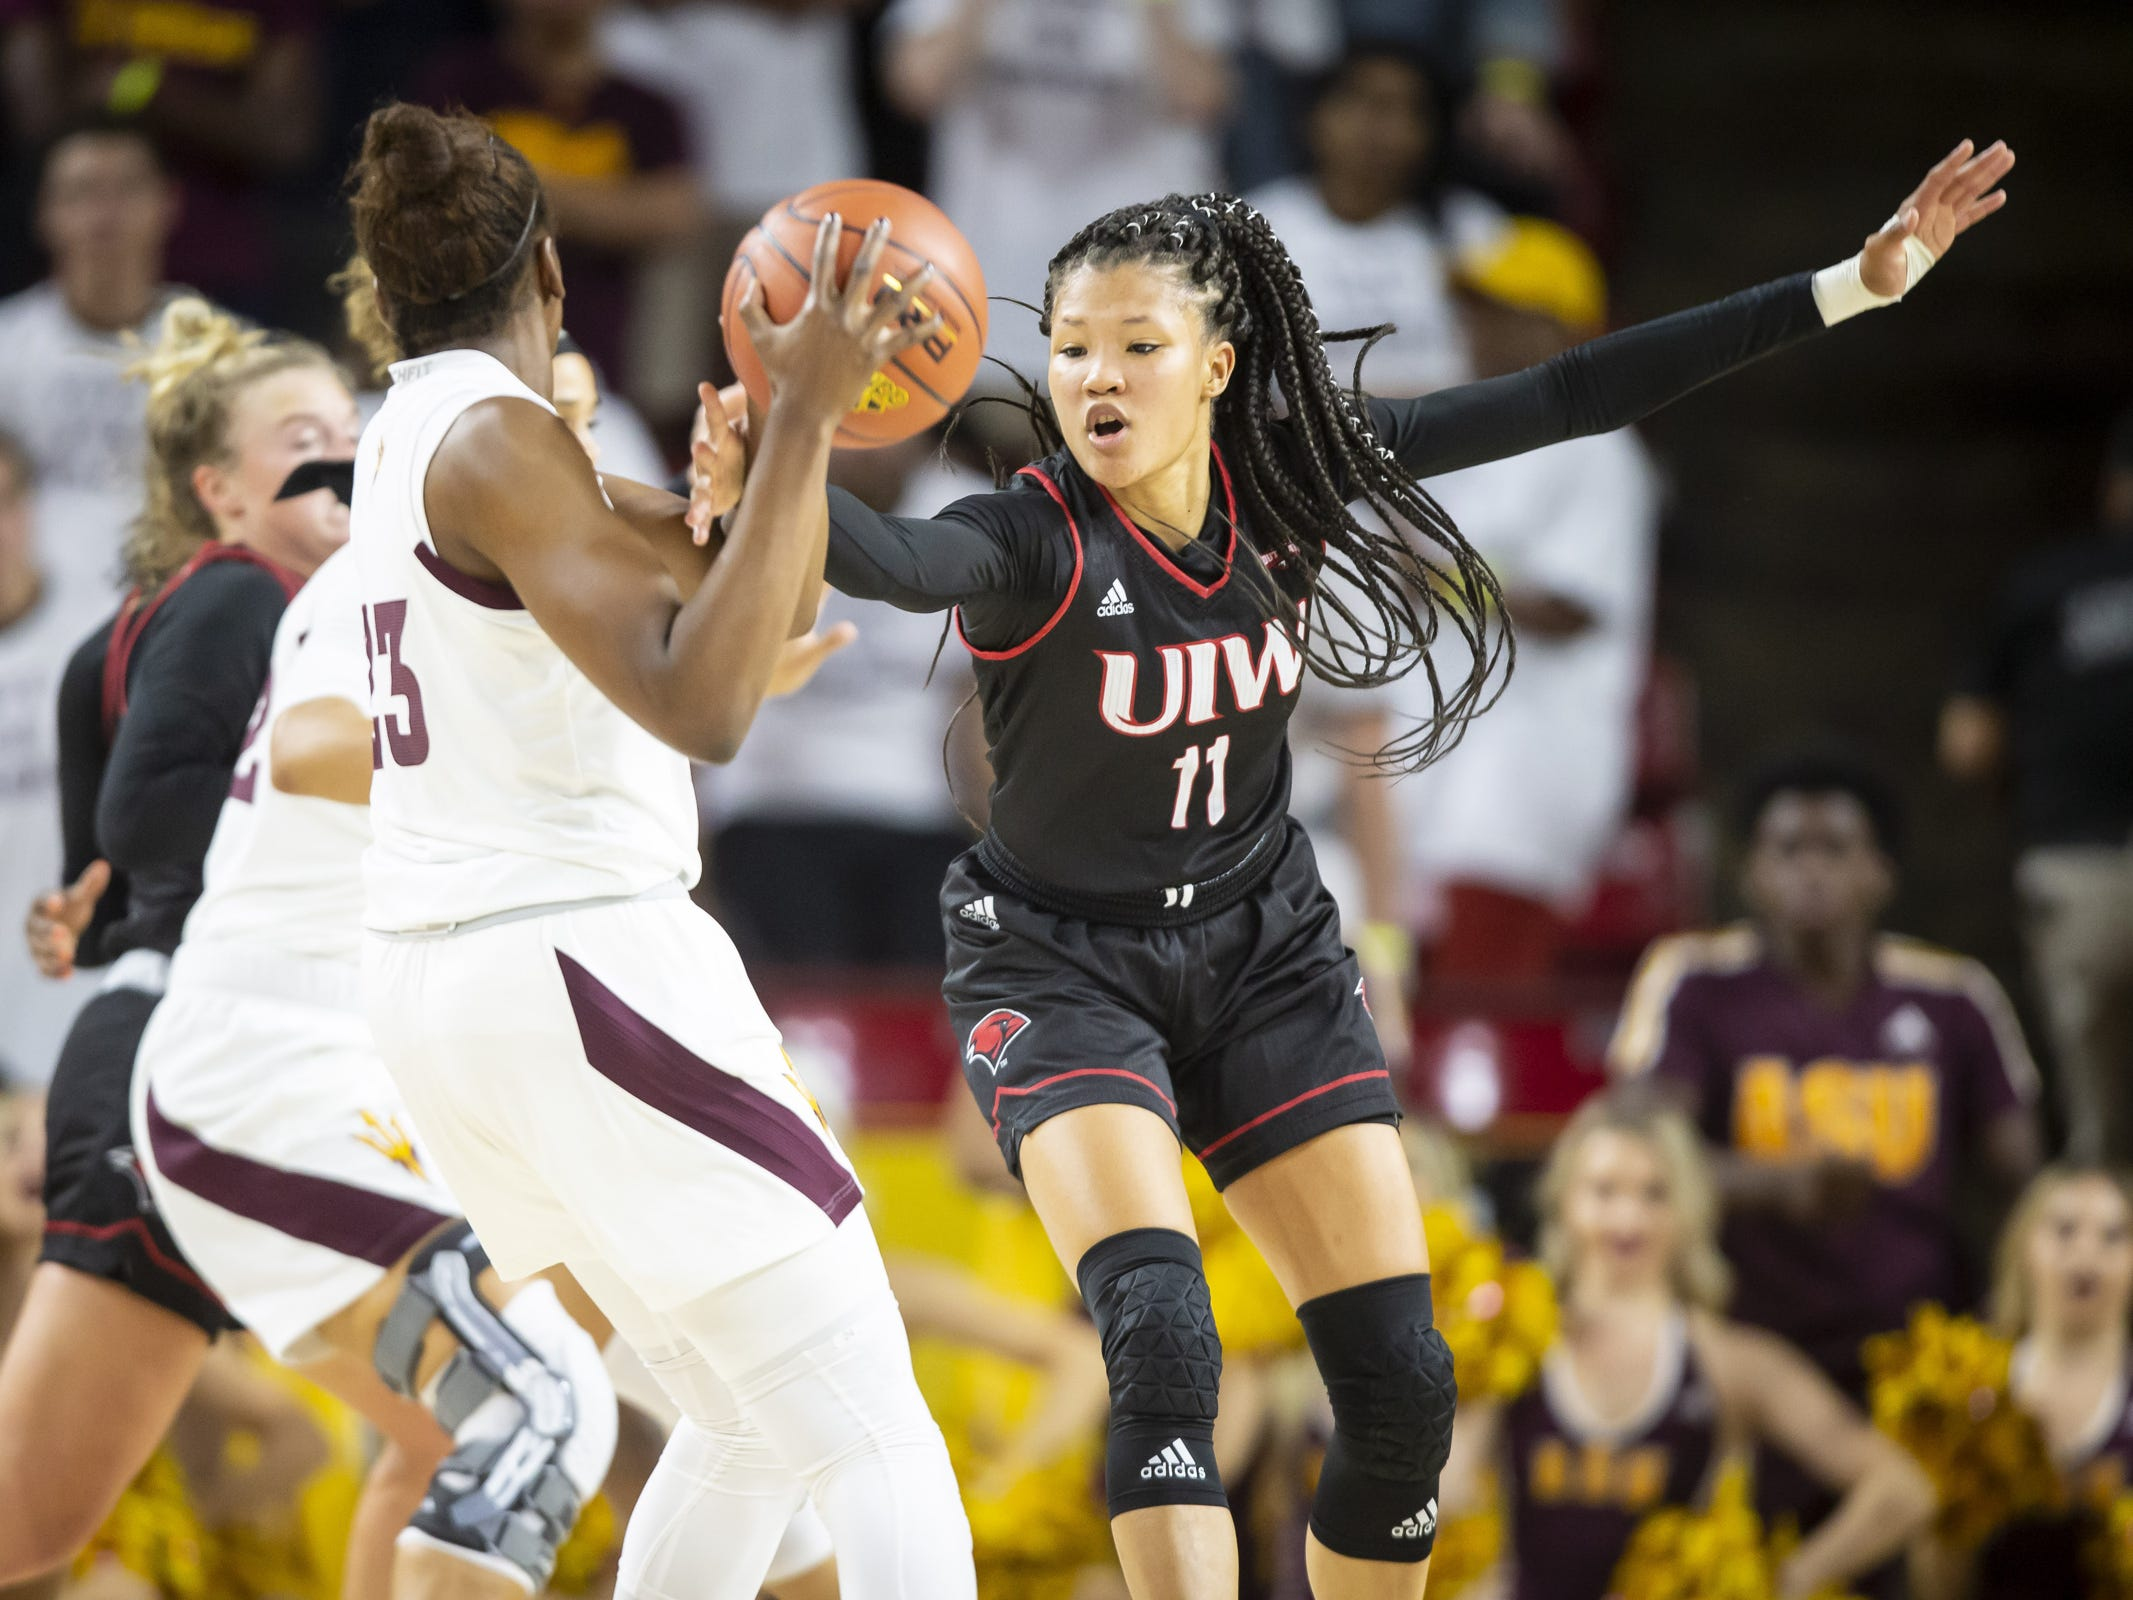 Guard Imani Robinson (11) of the Incarnate Word Cardinals reaches for the ball against forward Iris Mbulito (23) of the Arizona State Sun Devils at Wells Fargo Arena on Tuesday, November 6, 2018 in Tempe, Arizona.